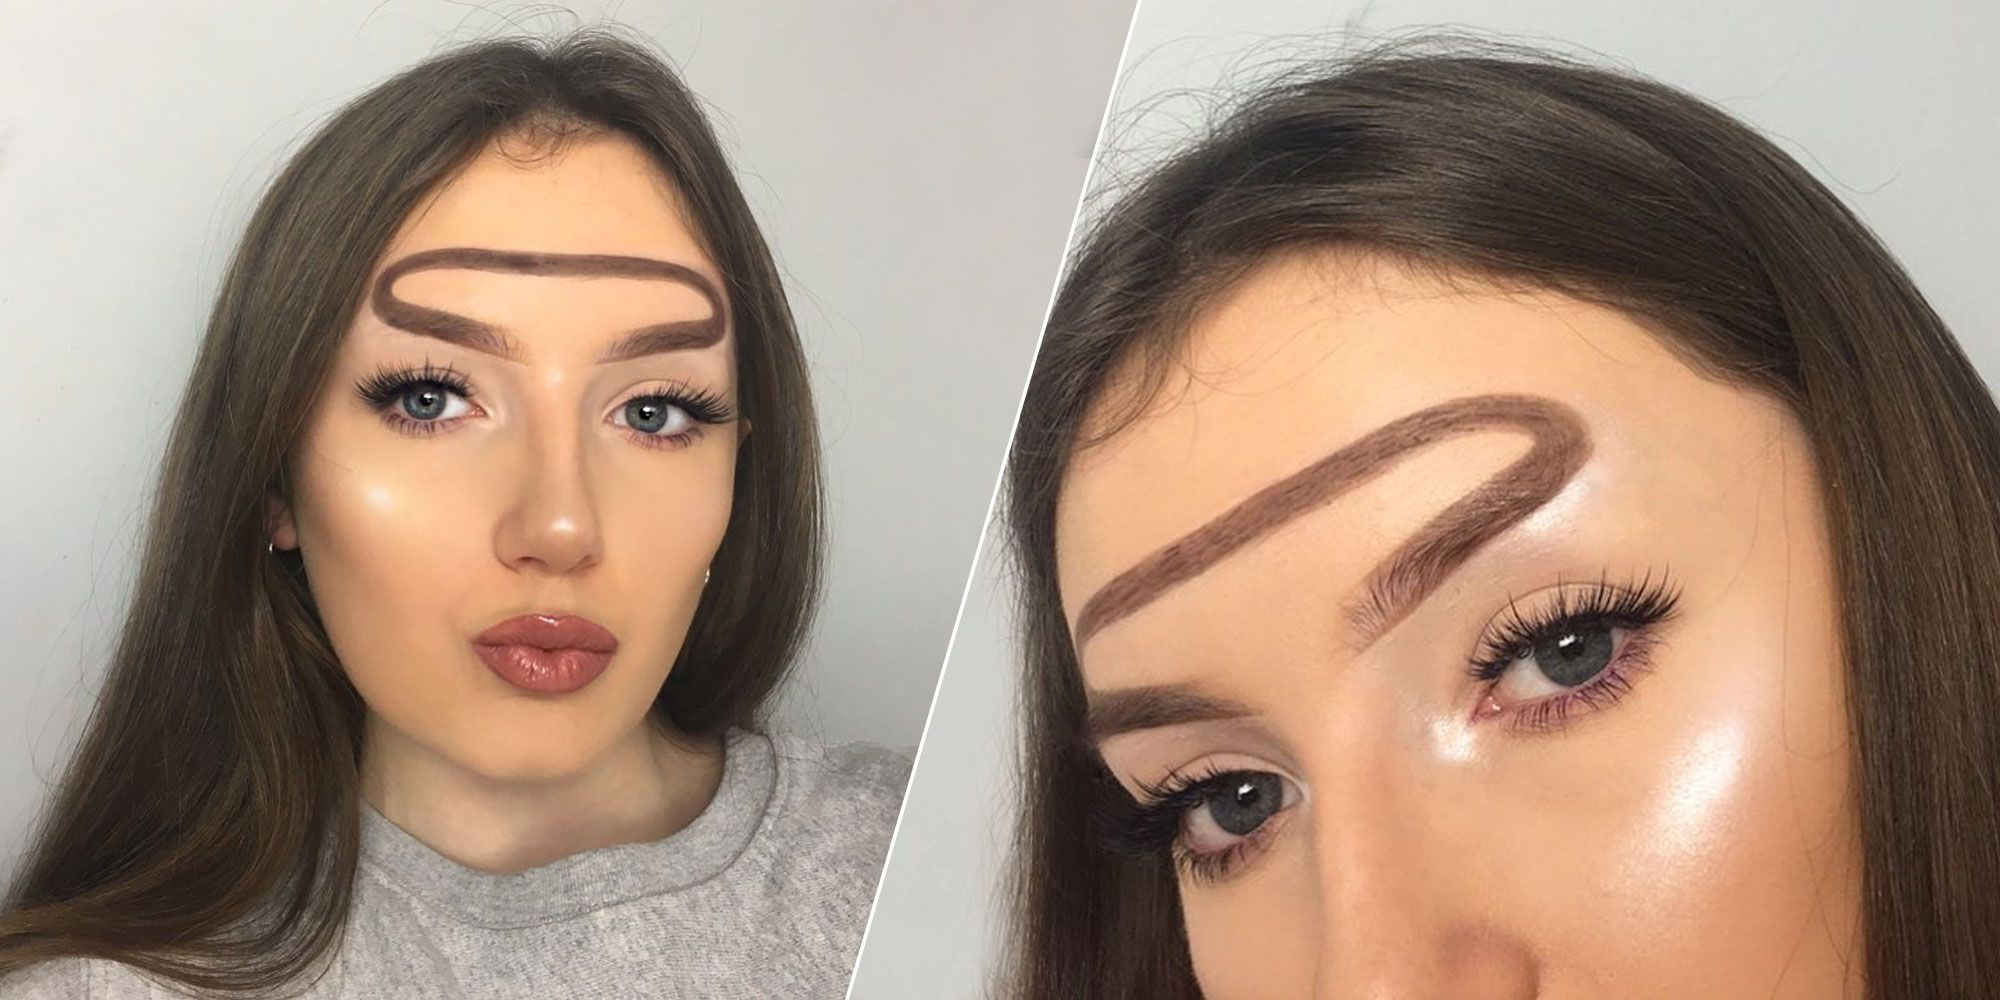 These Heavenly Halo Brows Are Strangely Beautiful Halo Eyebrow Trend